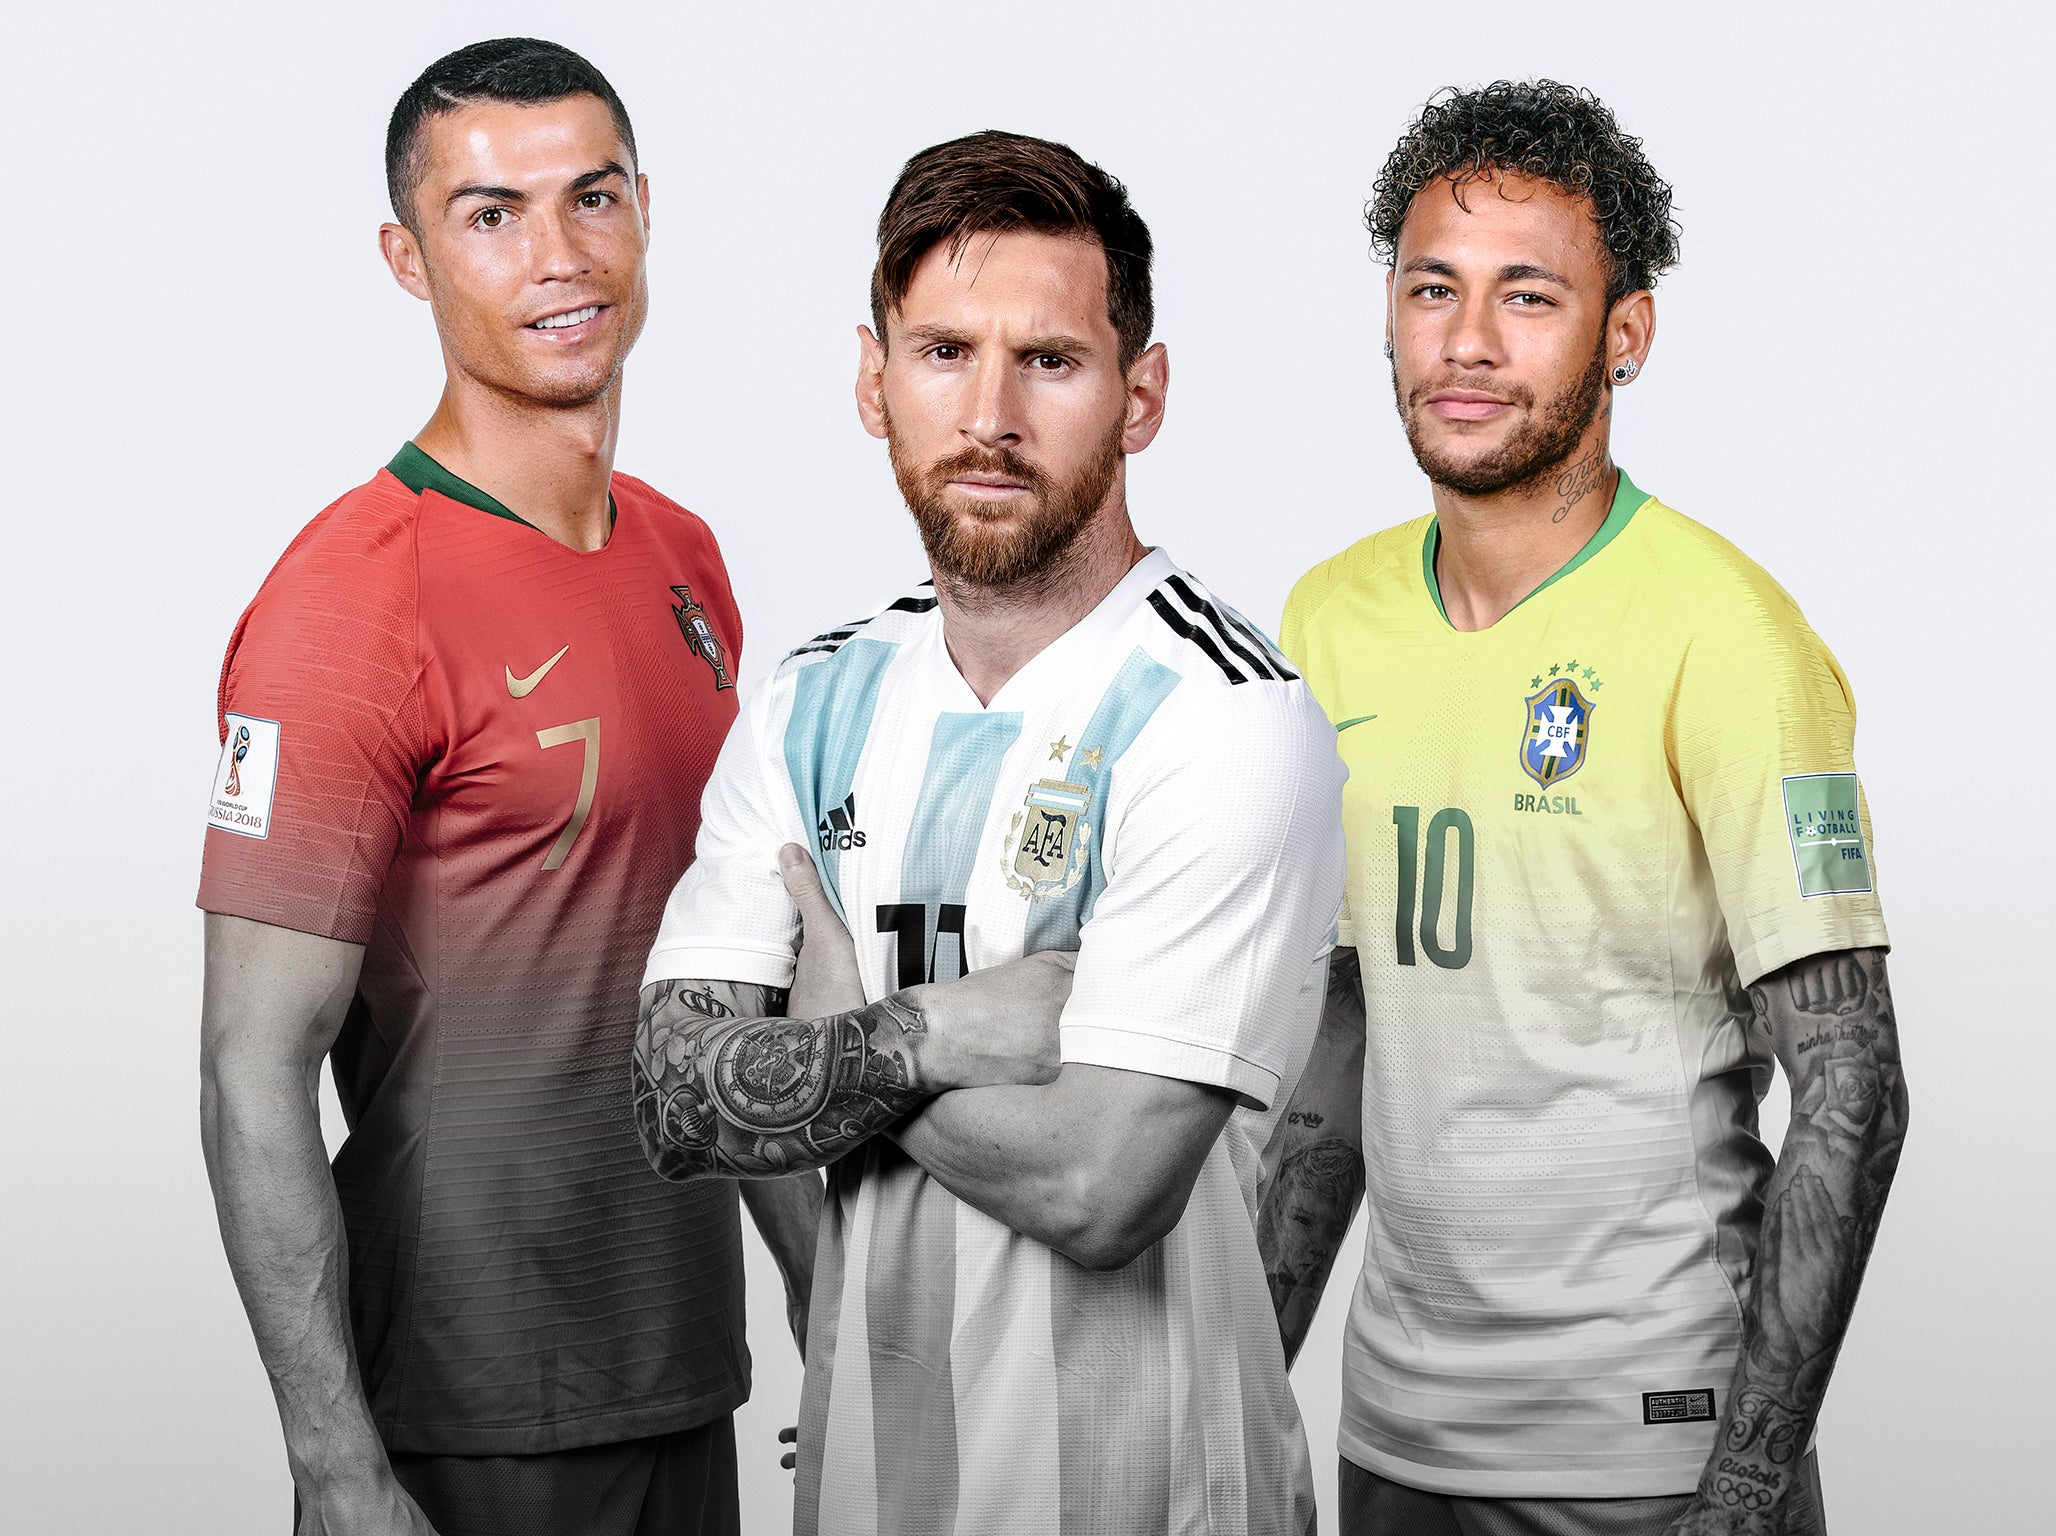 Why an egocentric World Cup of Cristiano Ronaldo, Lionel Messi and Neymar ultimately proved anything but